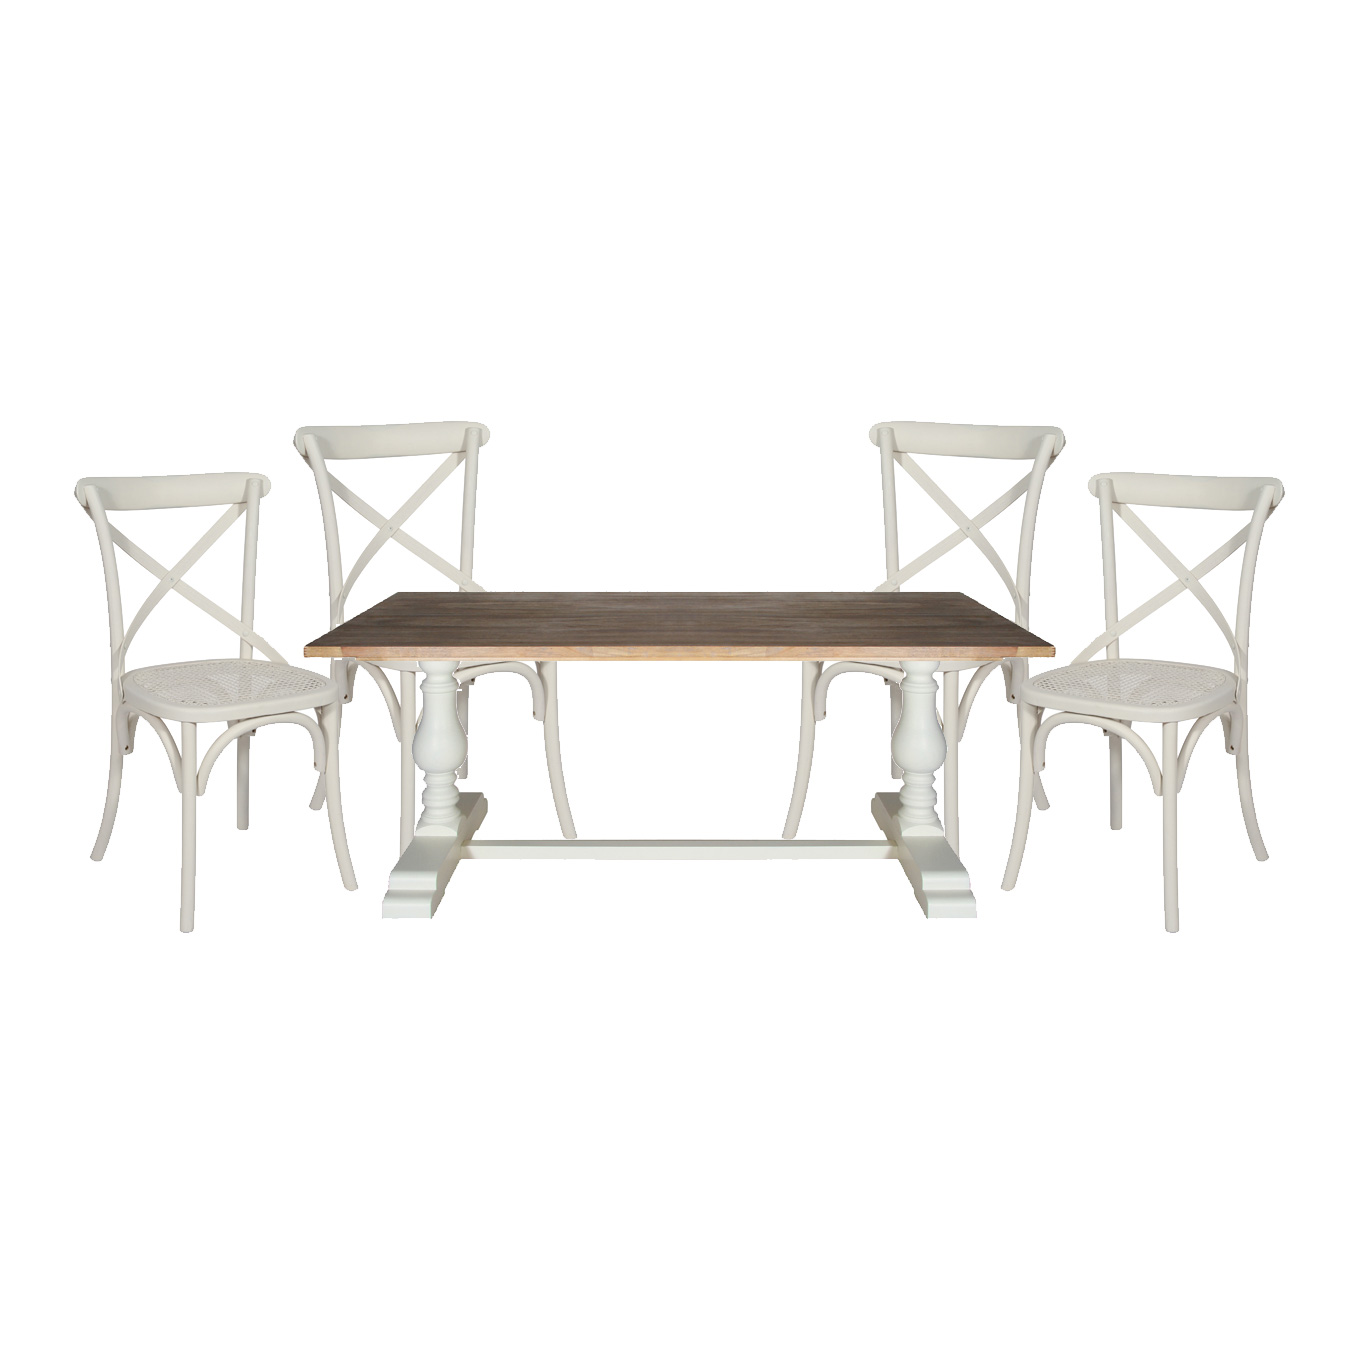 Heritage Range - Furniture Bundle, Antique White Oblong Dining Table and 4 Dining Chairs